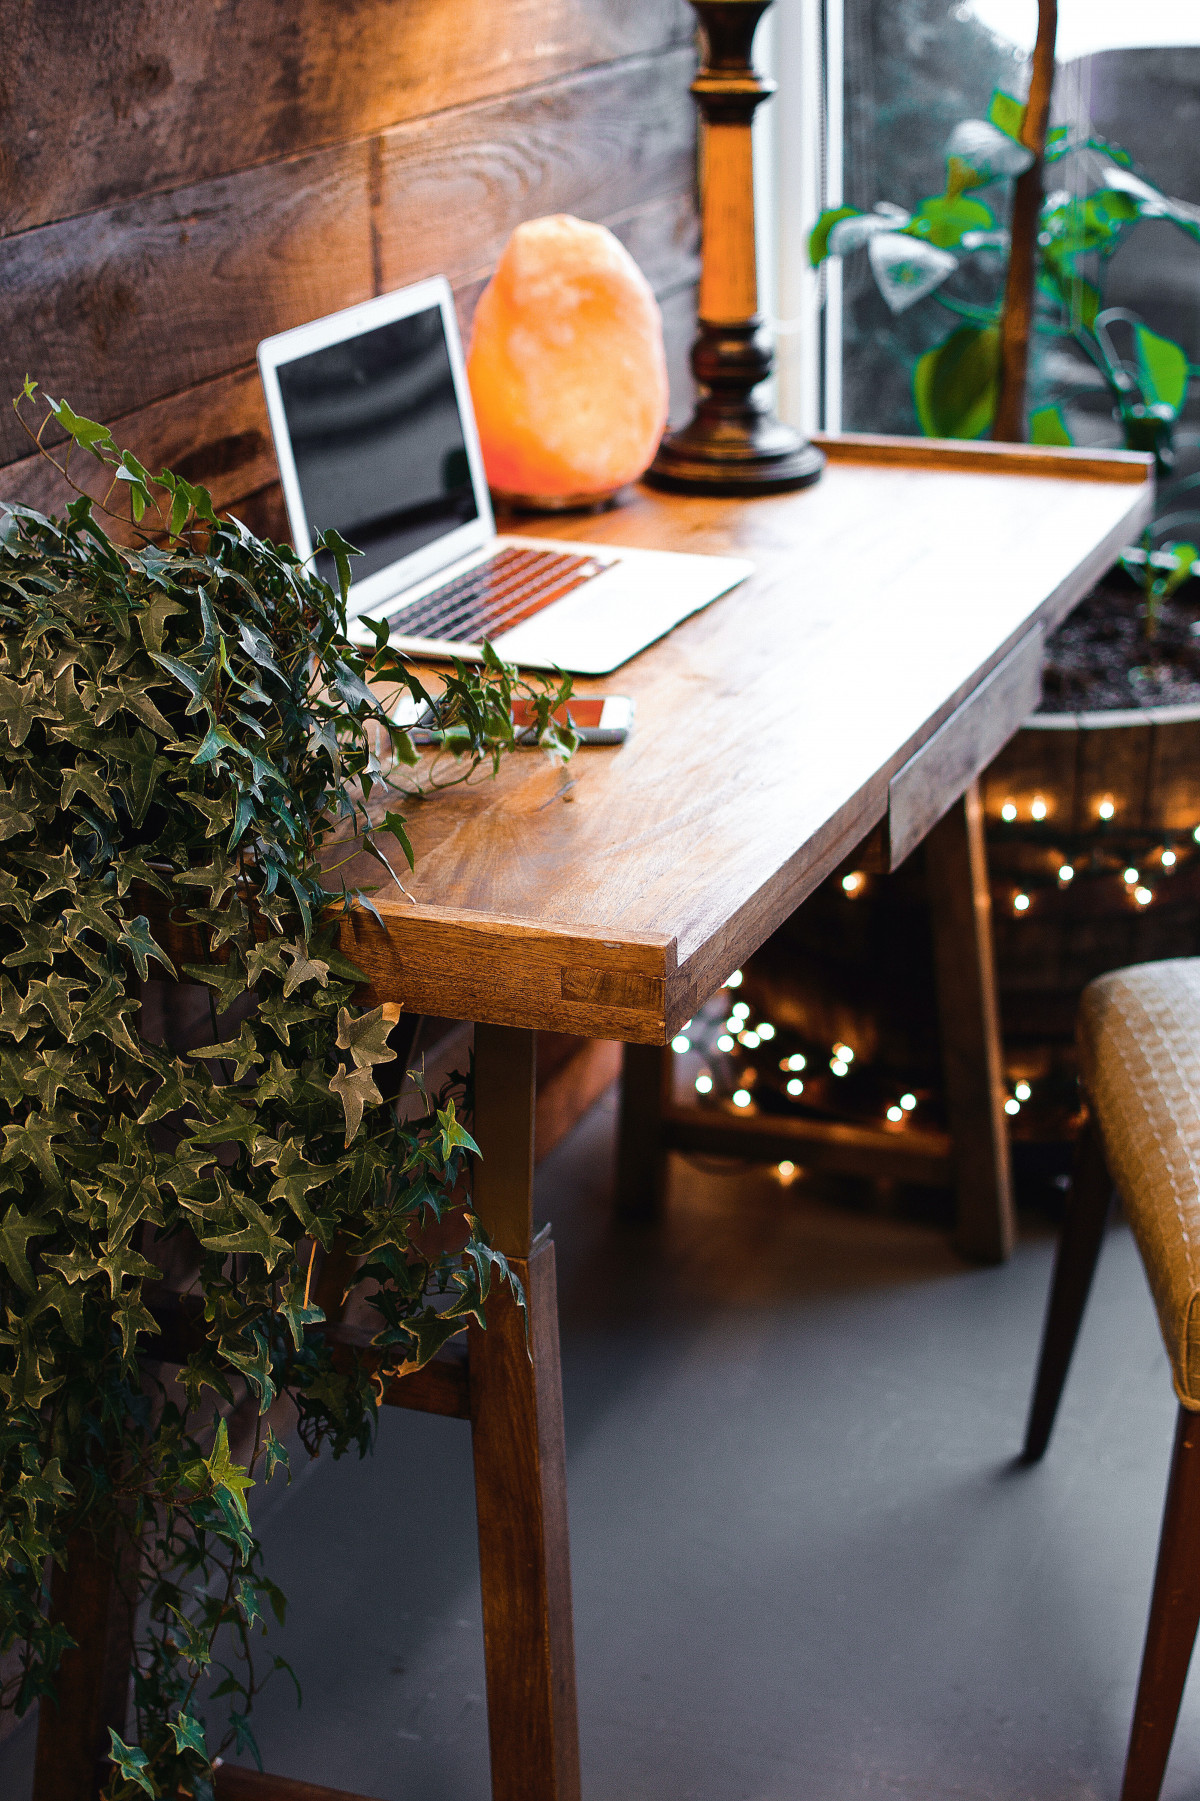 Himalayan salt lamp can add some spark to the corner office within your home